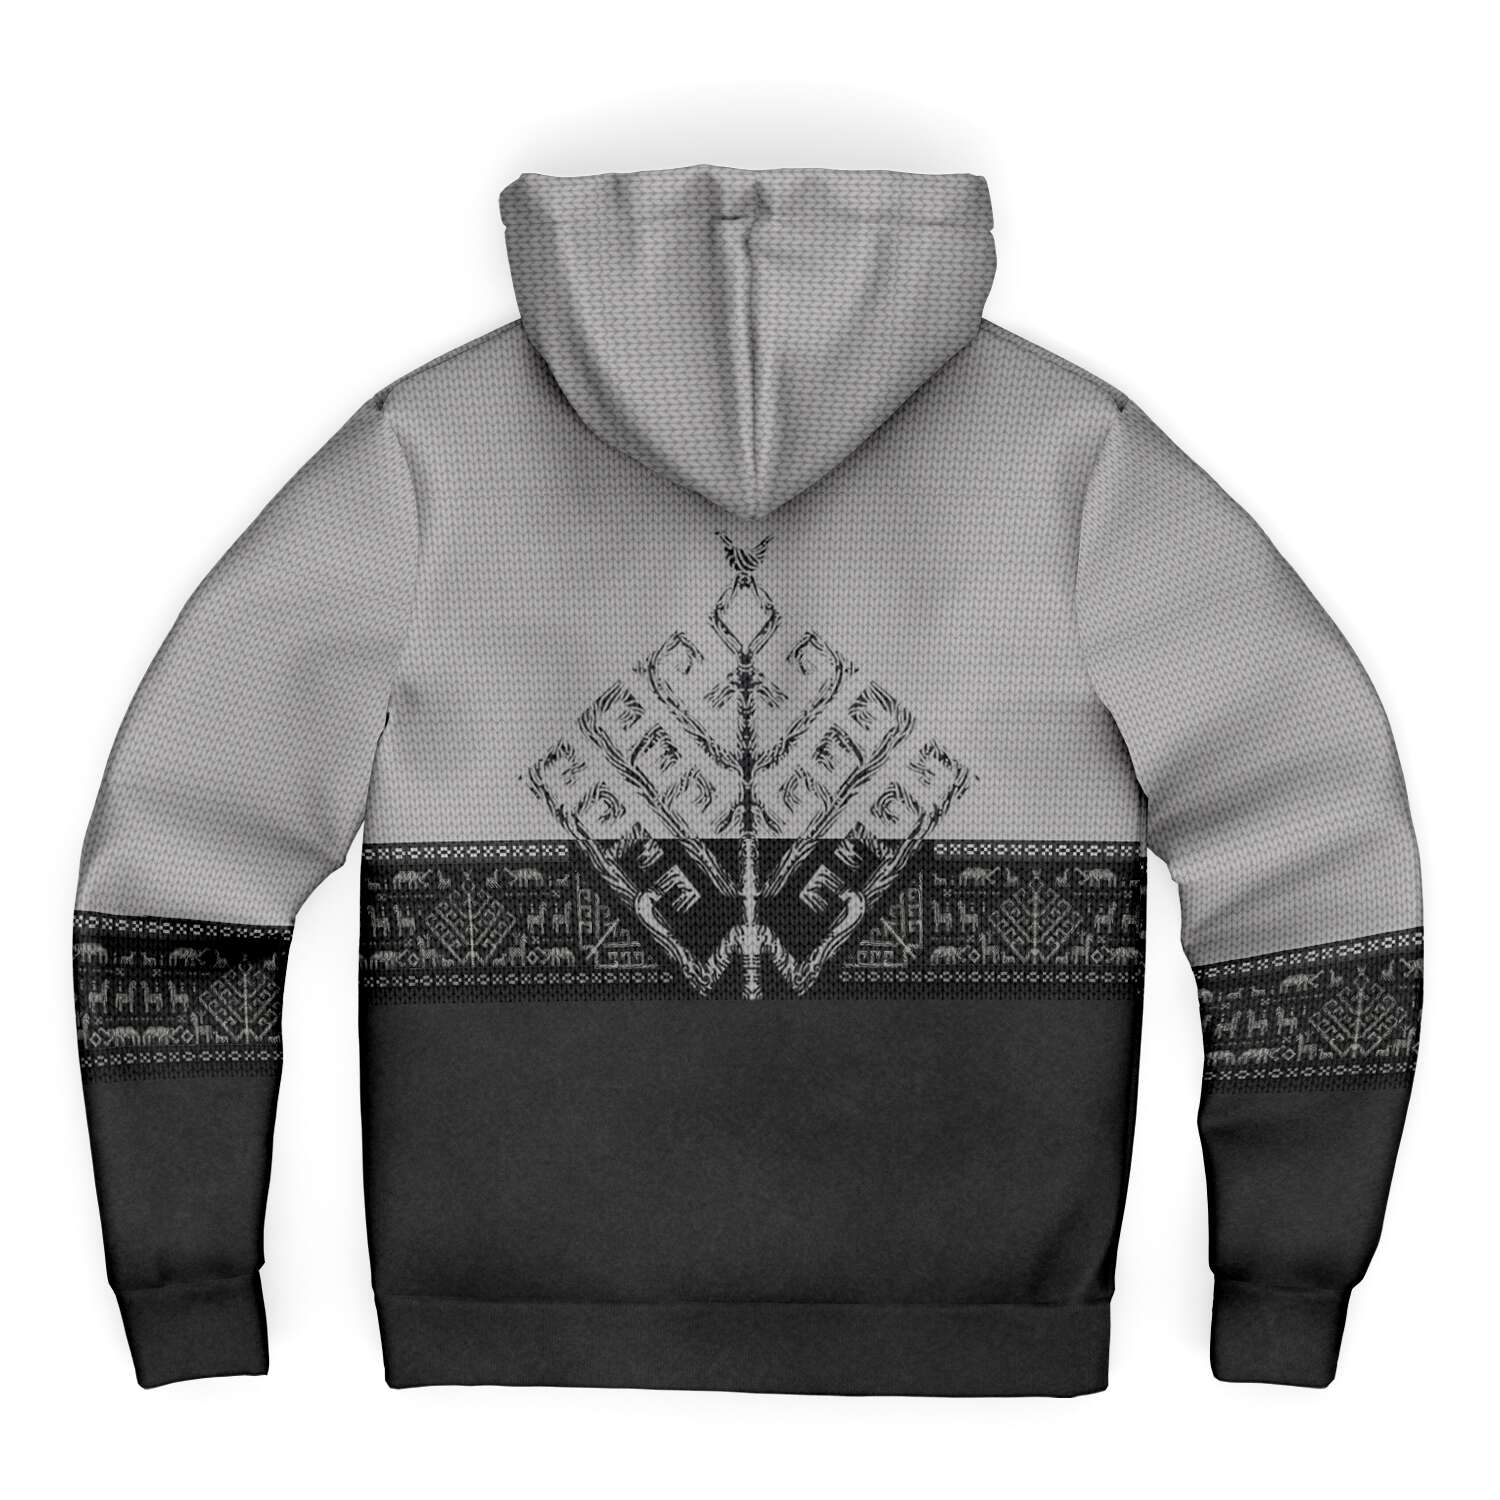 Folk Yggdrasil Premium Microfleece Zip-up Viking Hoodie